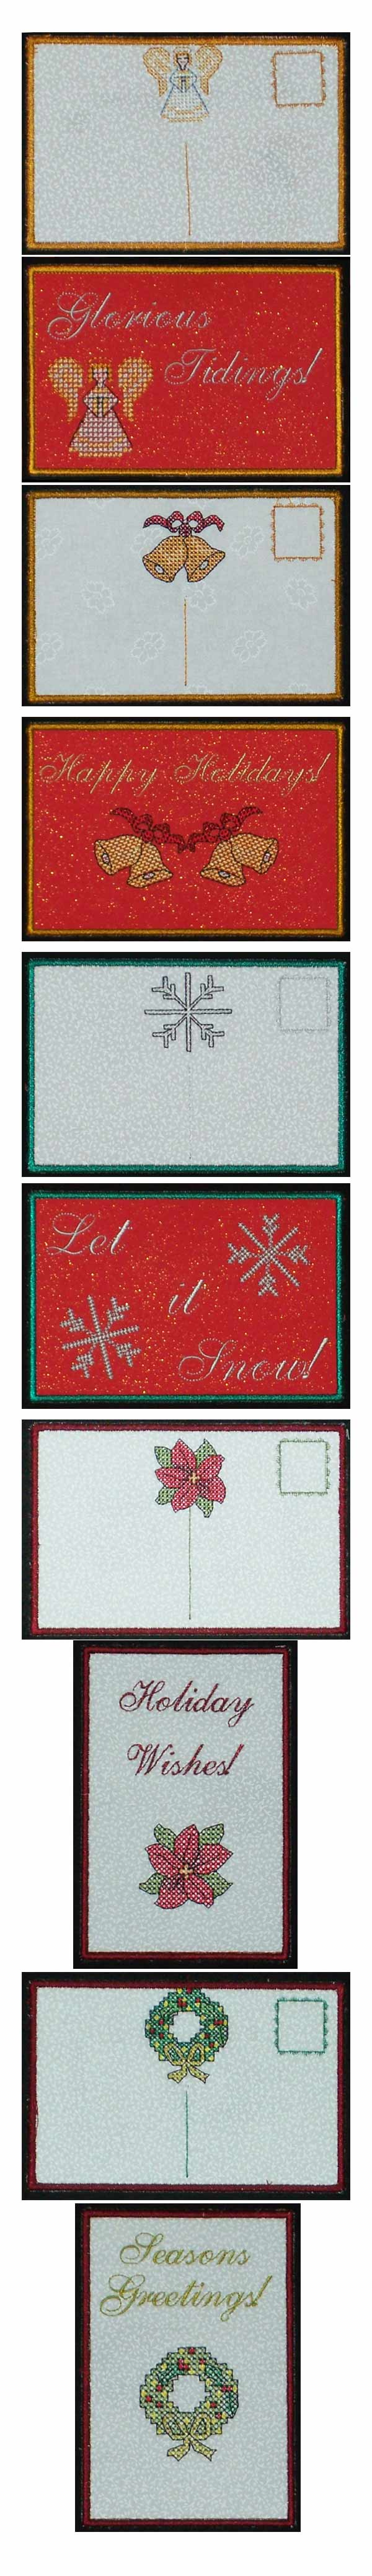 Holiday Post Cards Embroidery Machine Design Details